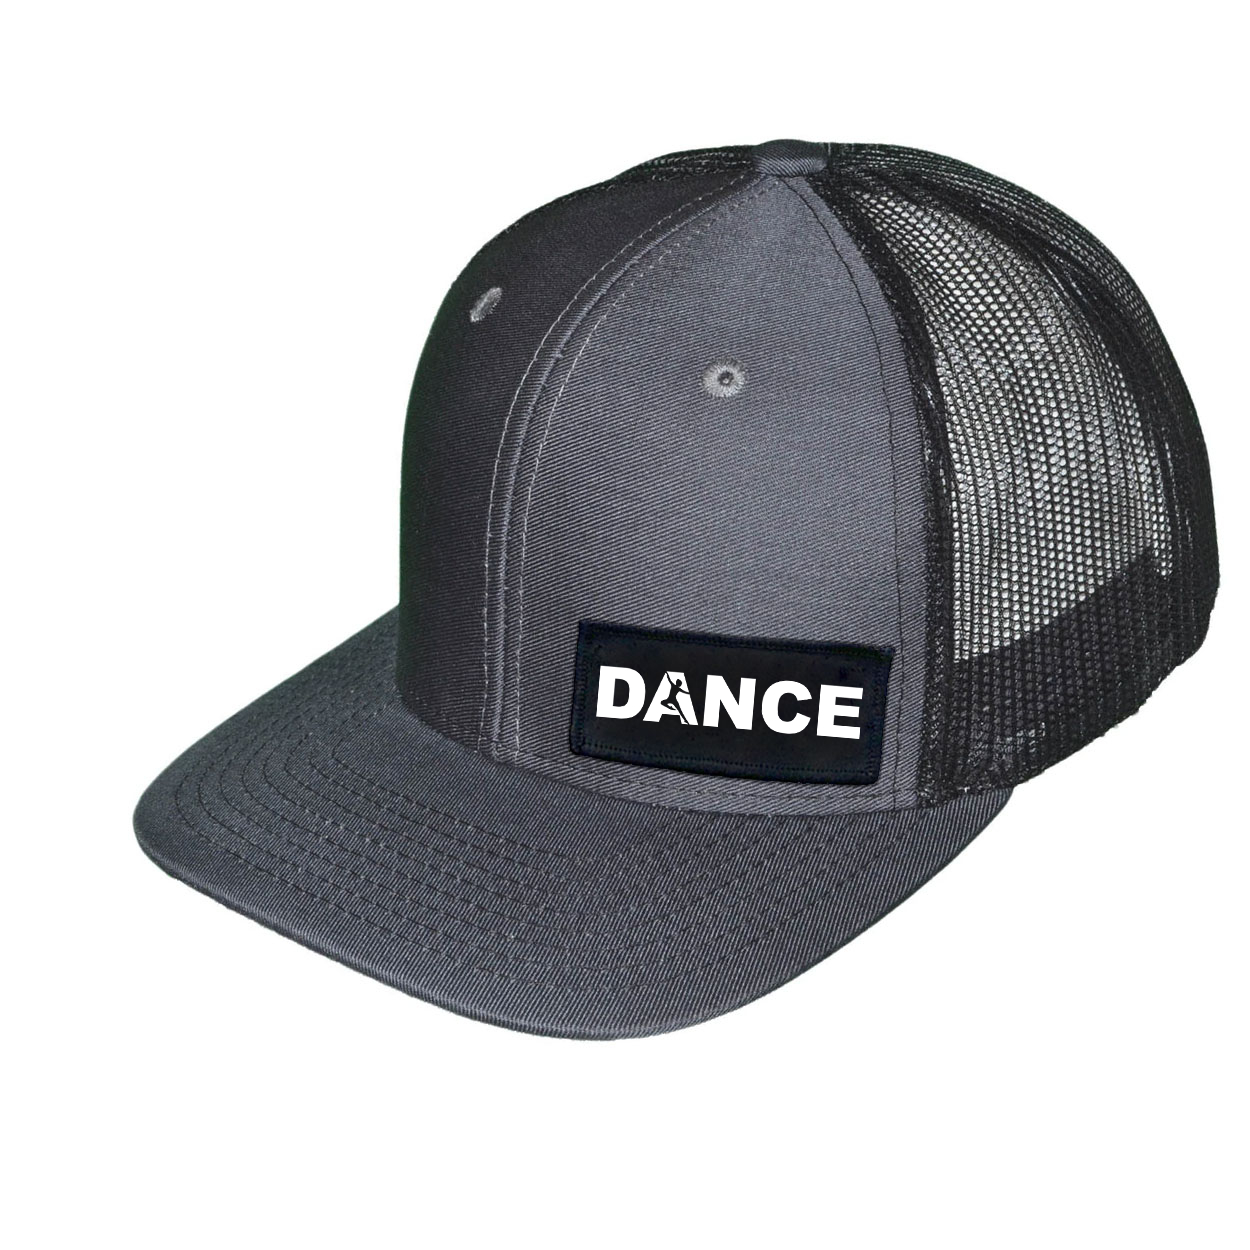 Dance Silhouette Logo Night Out Woven Patch Snapback Trucker Hat Dark Gray/Black (White Logo)